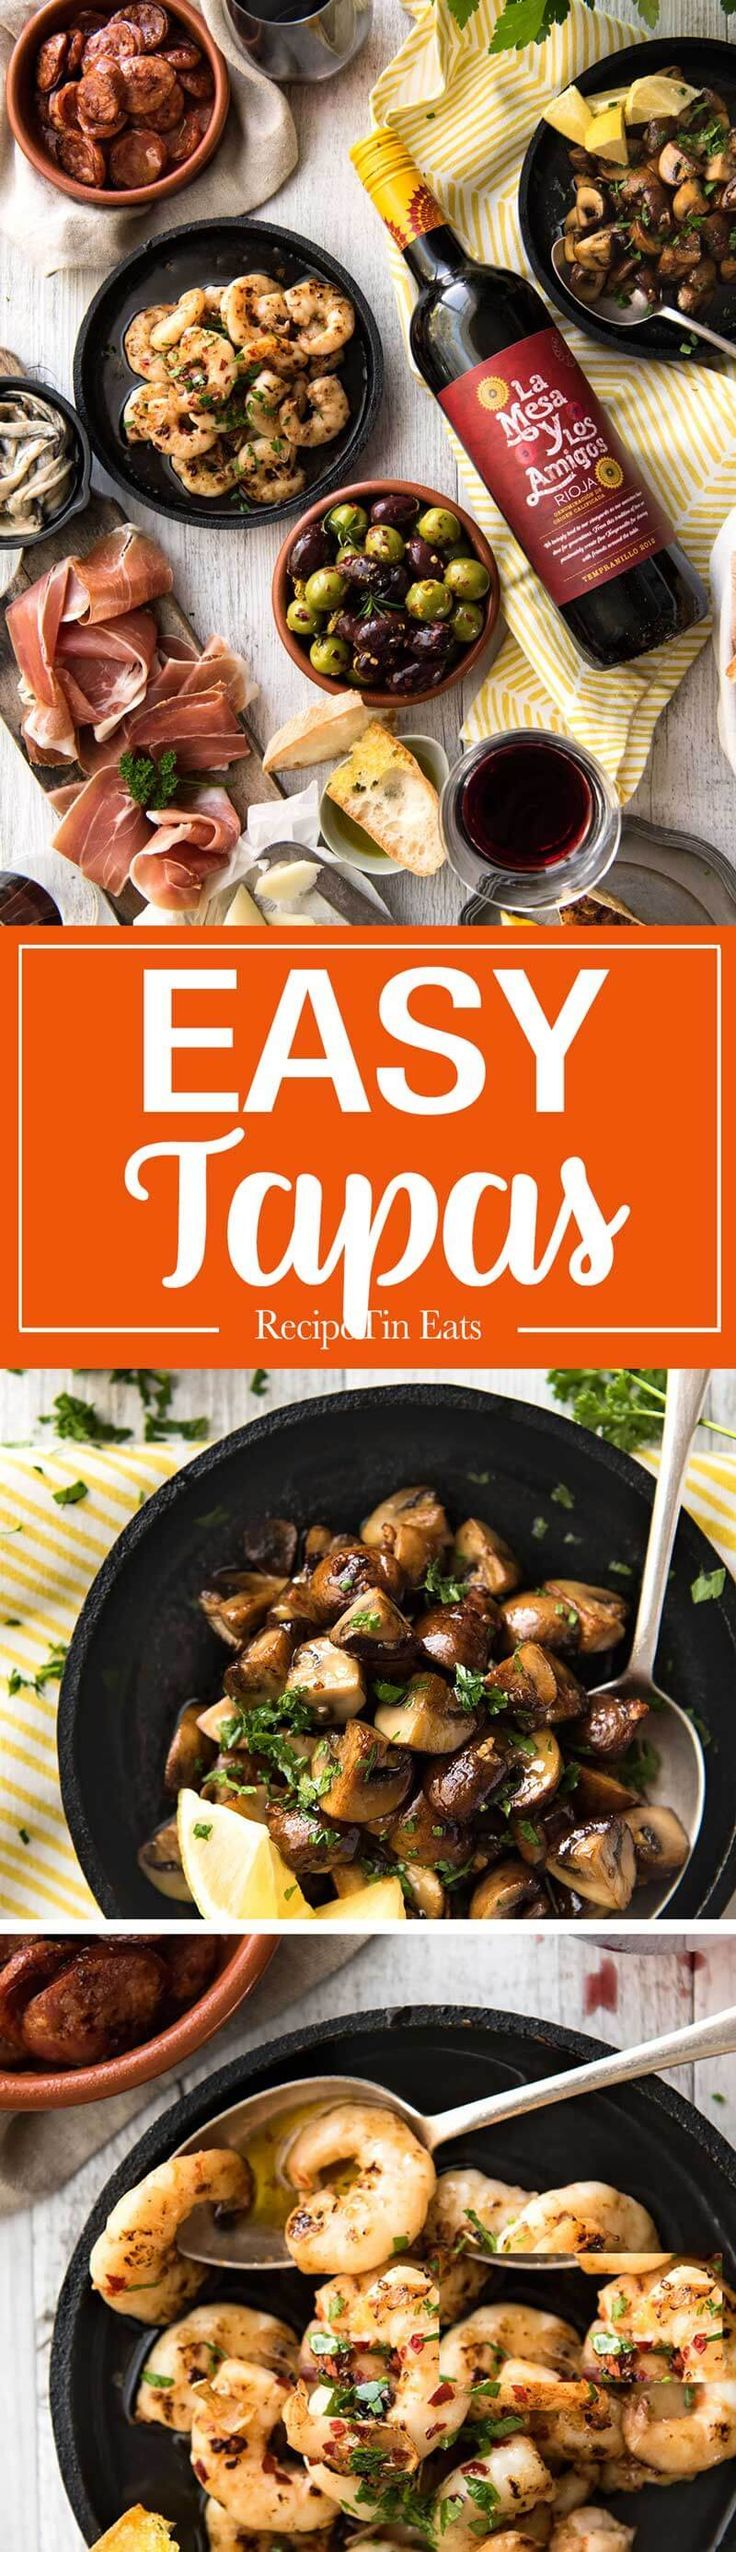 5 easy spanish tapas recipes all your favorites from the tapas bar 5 easy spanish tapas recipes all your favorites from the tapas bar garlic forumfinder Images